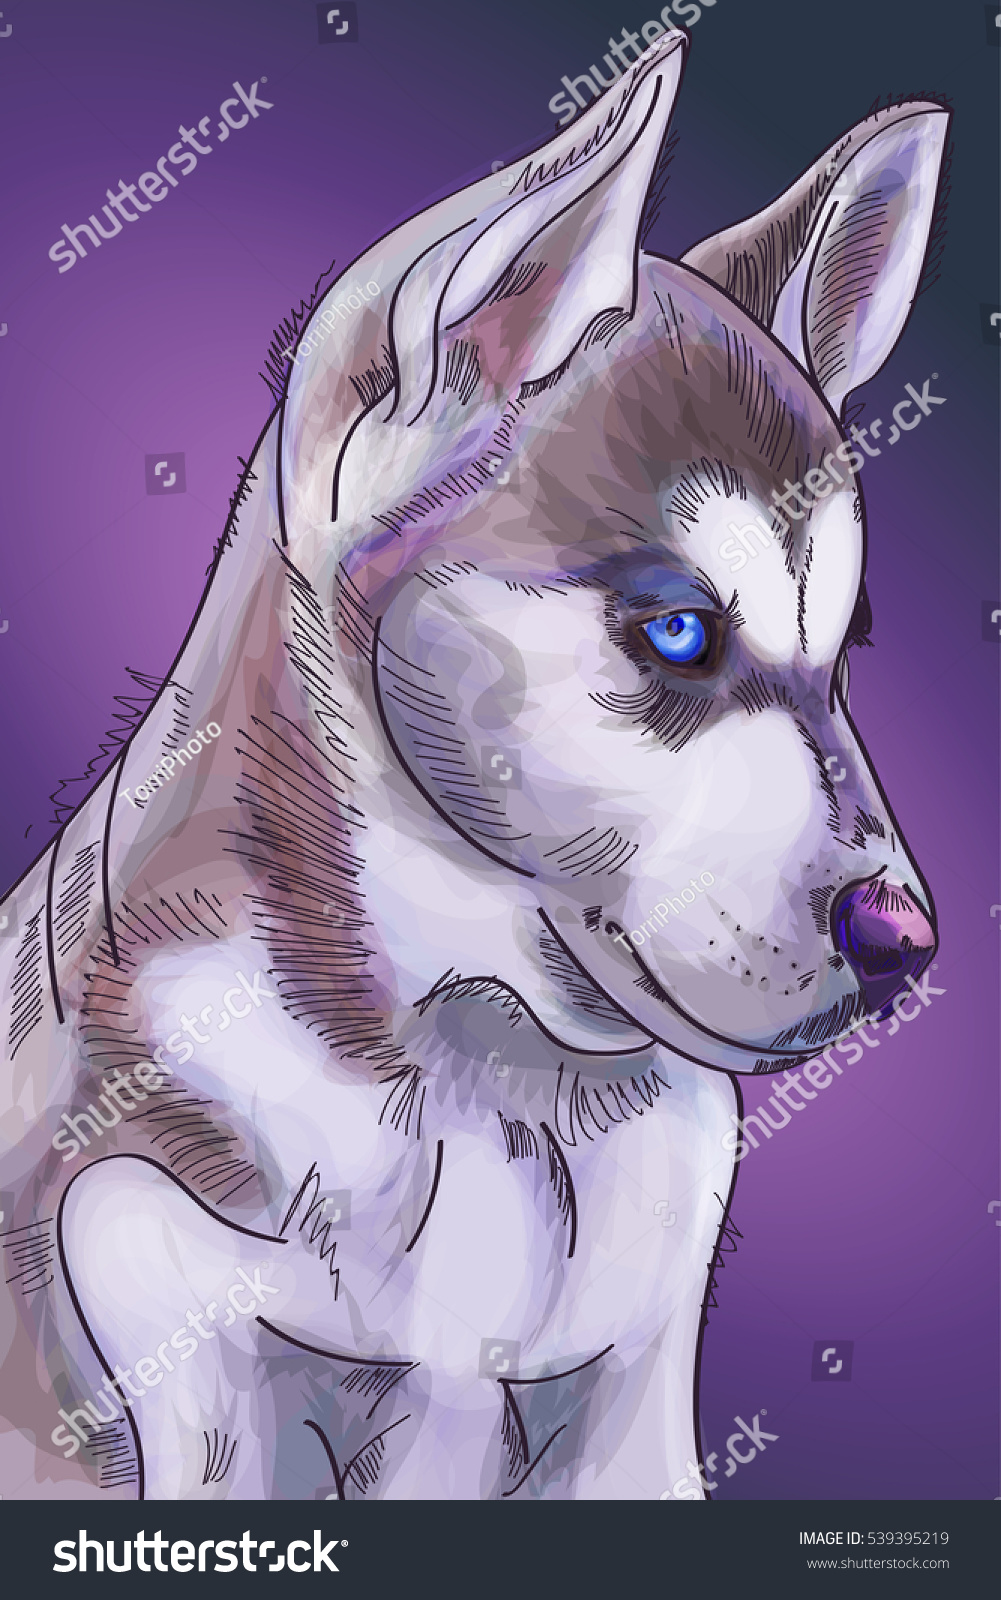 https://www.shutterstock.com/image-illustration/hand-drawn-watercolor-cute-siberian-huskies-539395219